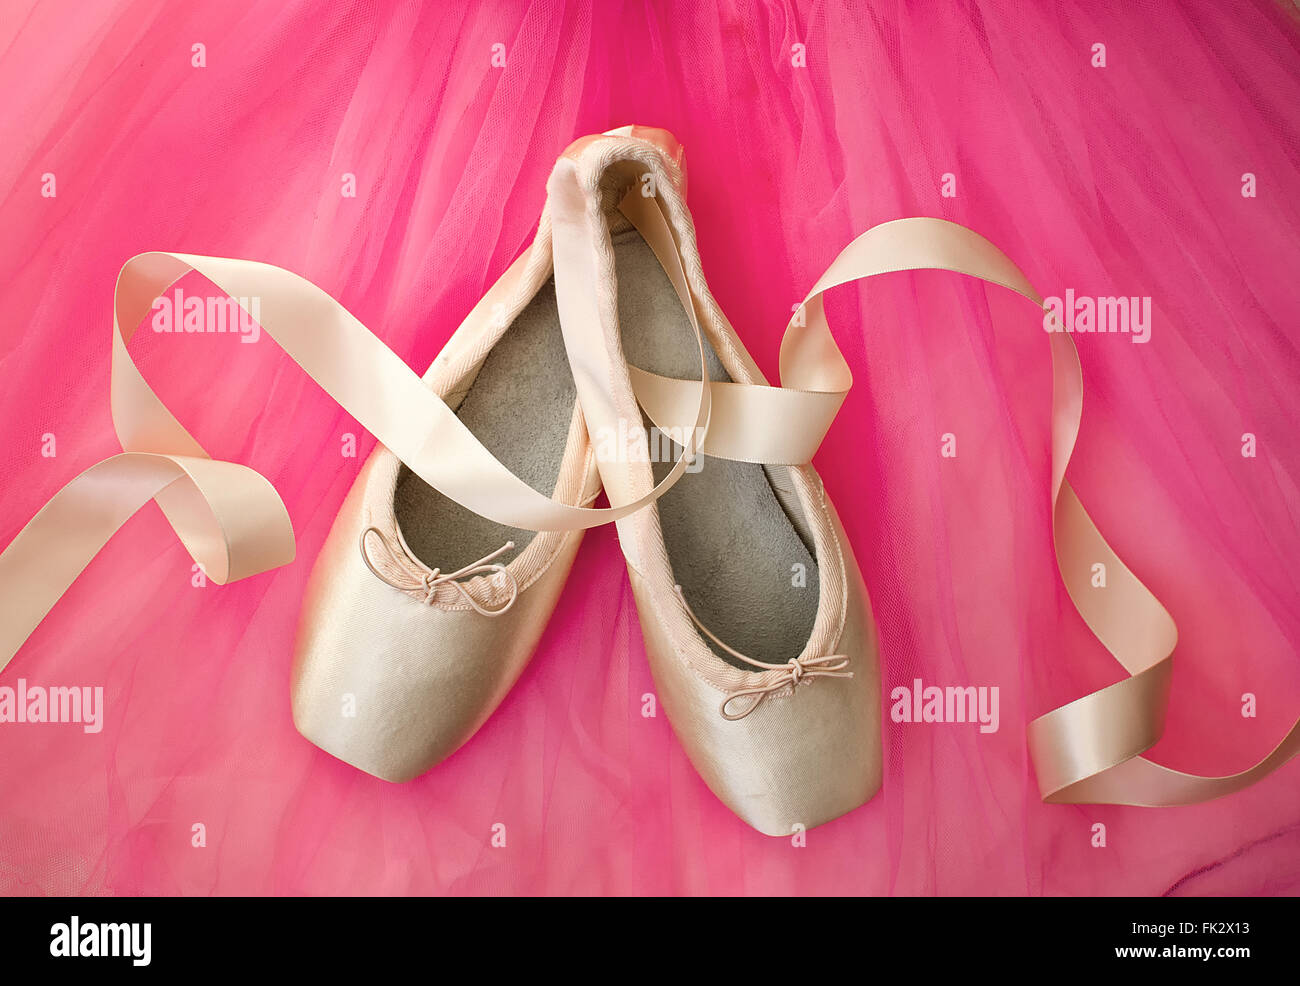 A pair of pointe shoes with ribbons and a pink tutu. - Stock Image